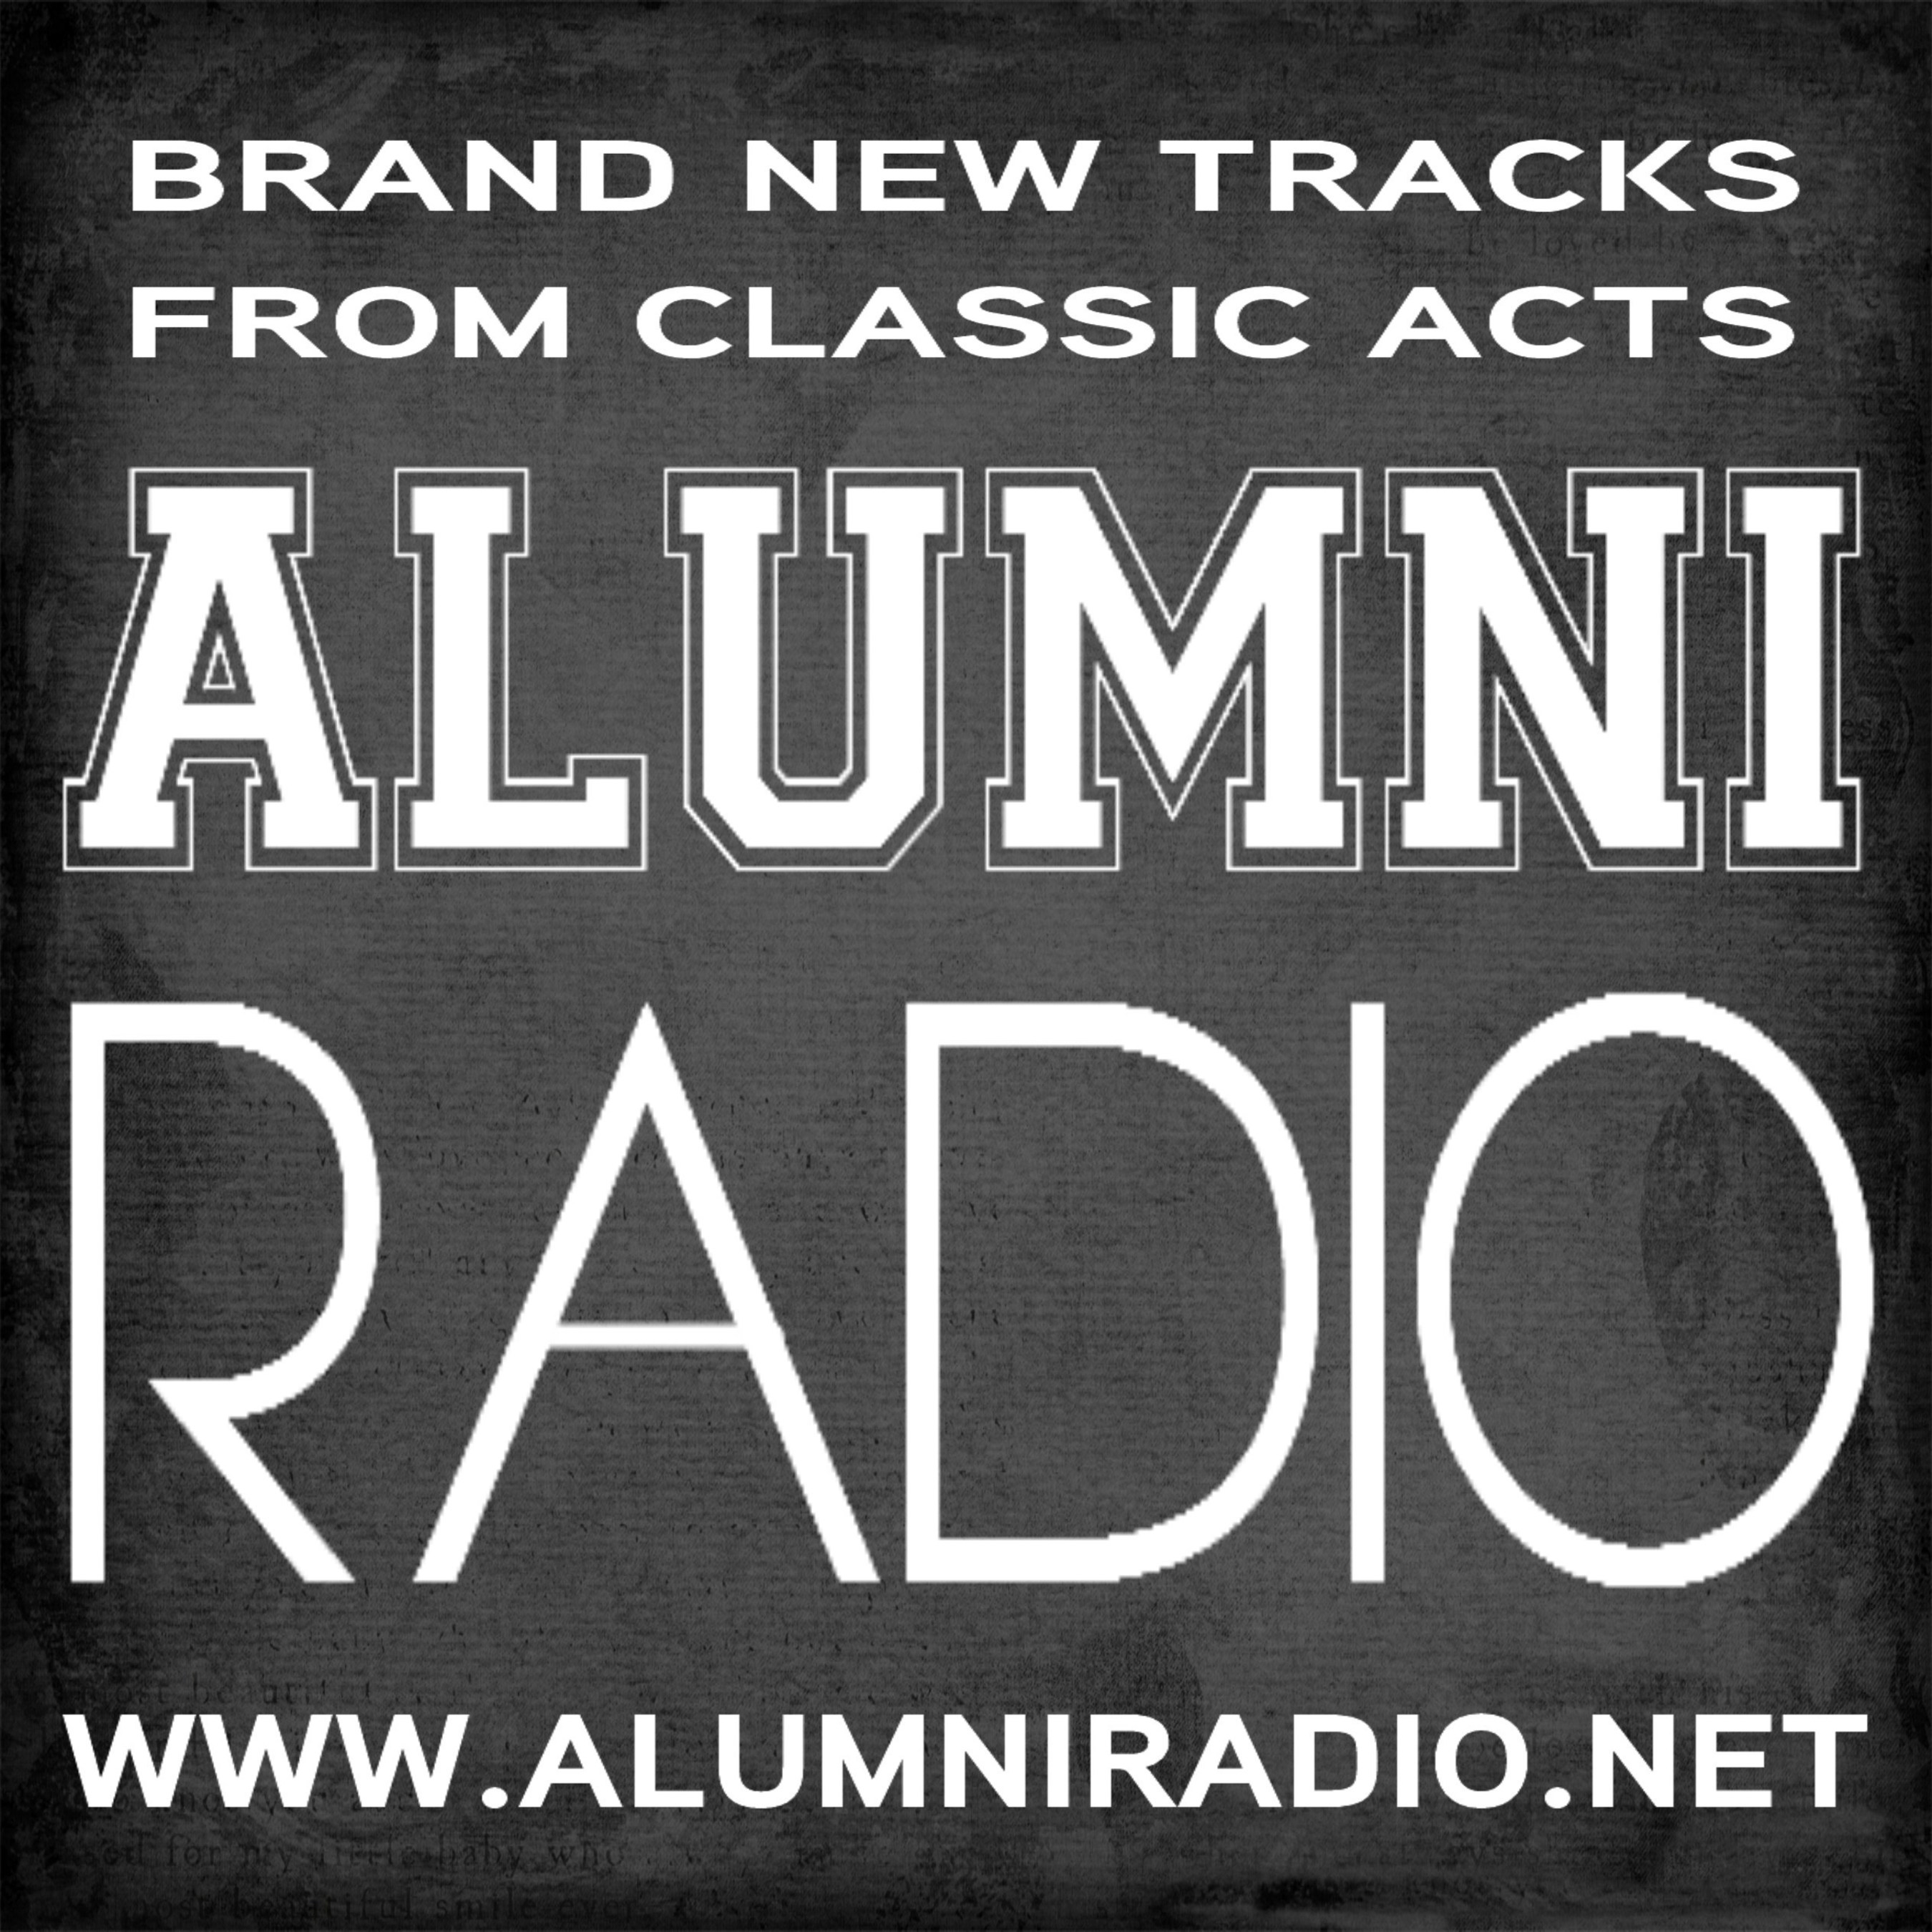 Alumni Radio introduces a completely new radio format